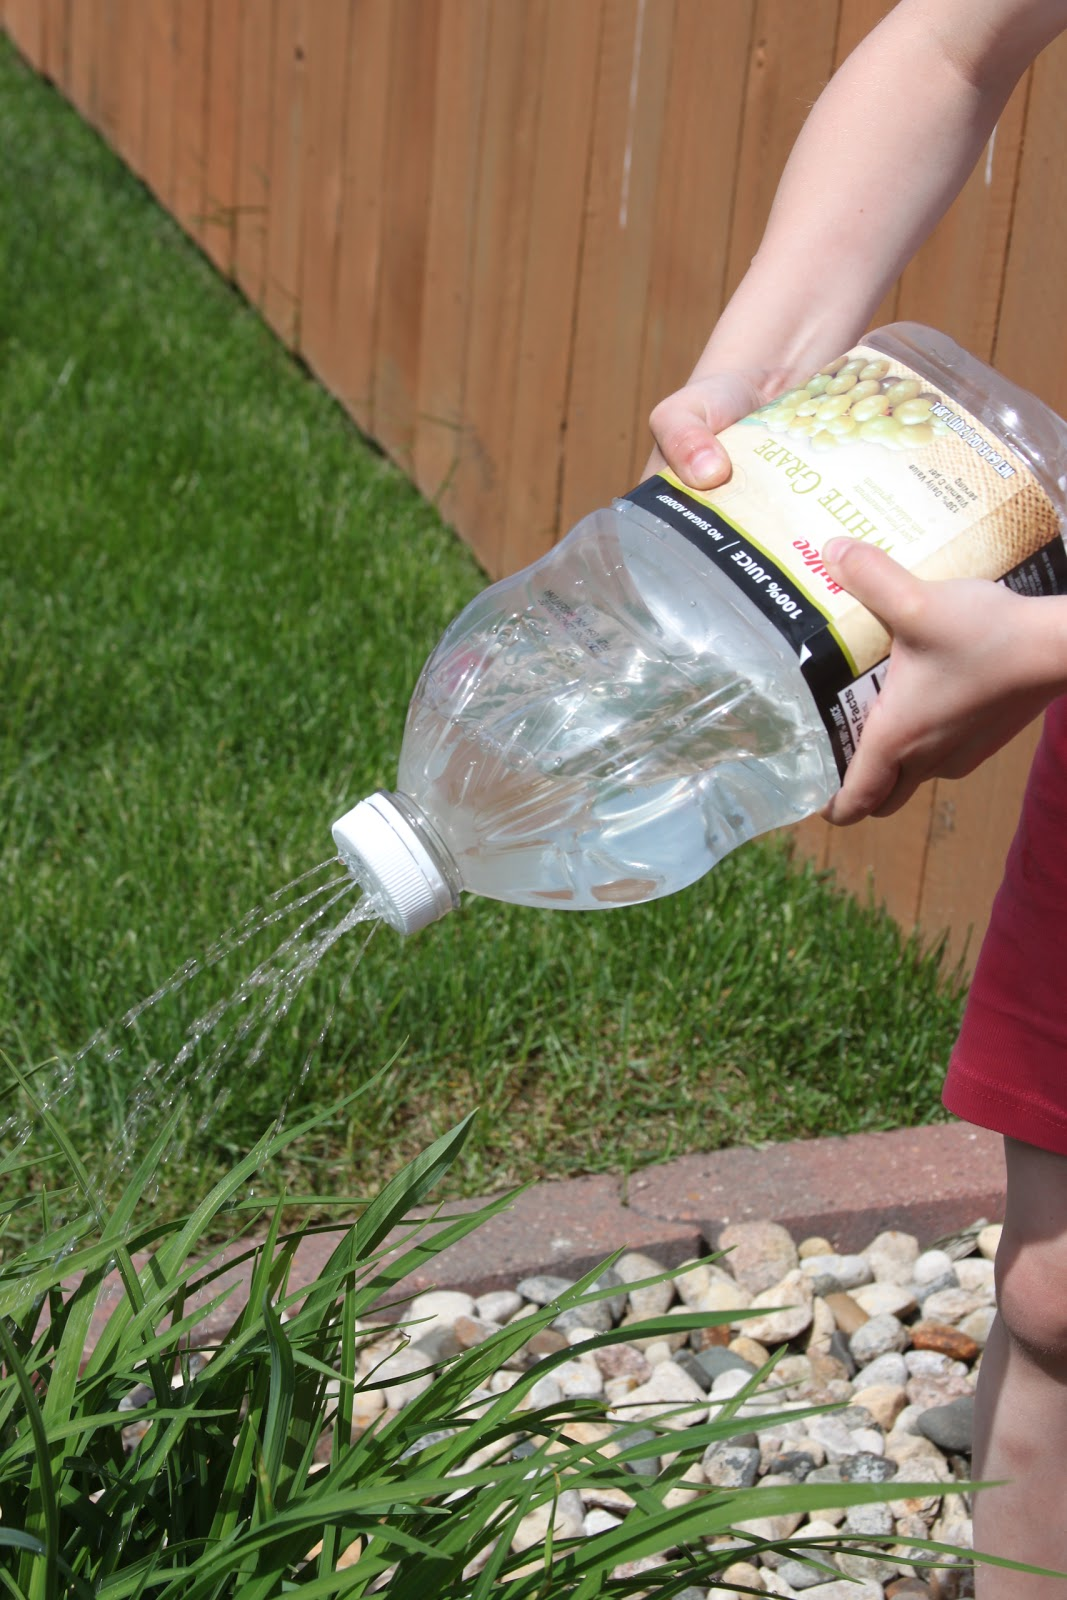 Kara S Creative Place Kids Watering Cans From Plastic Bottles